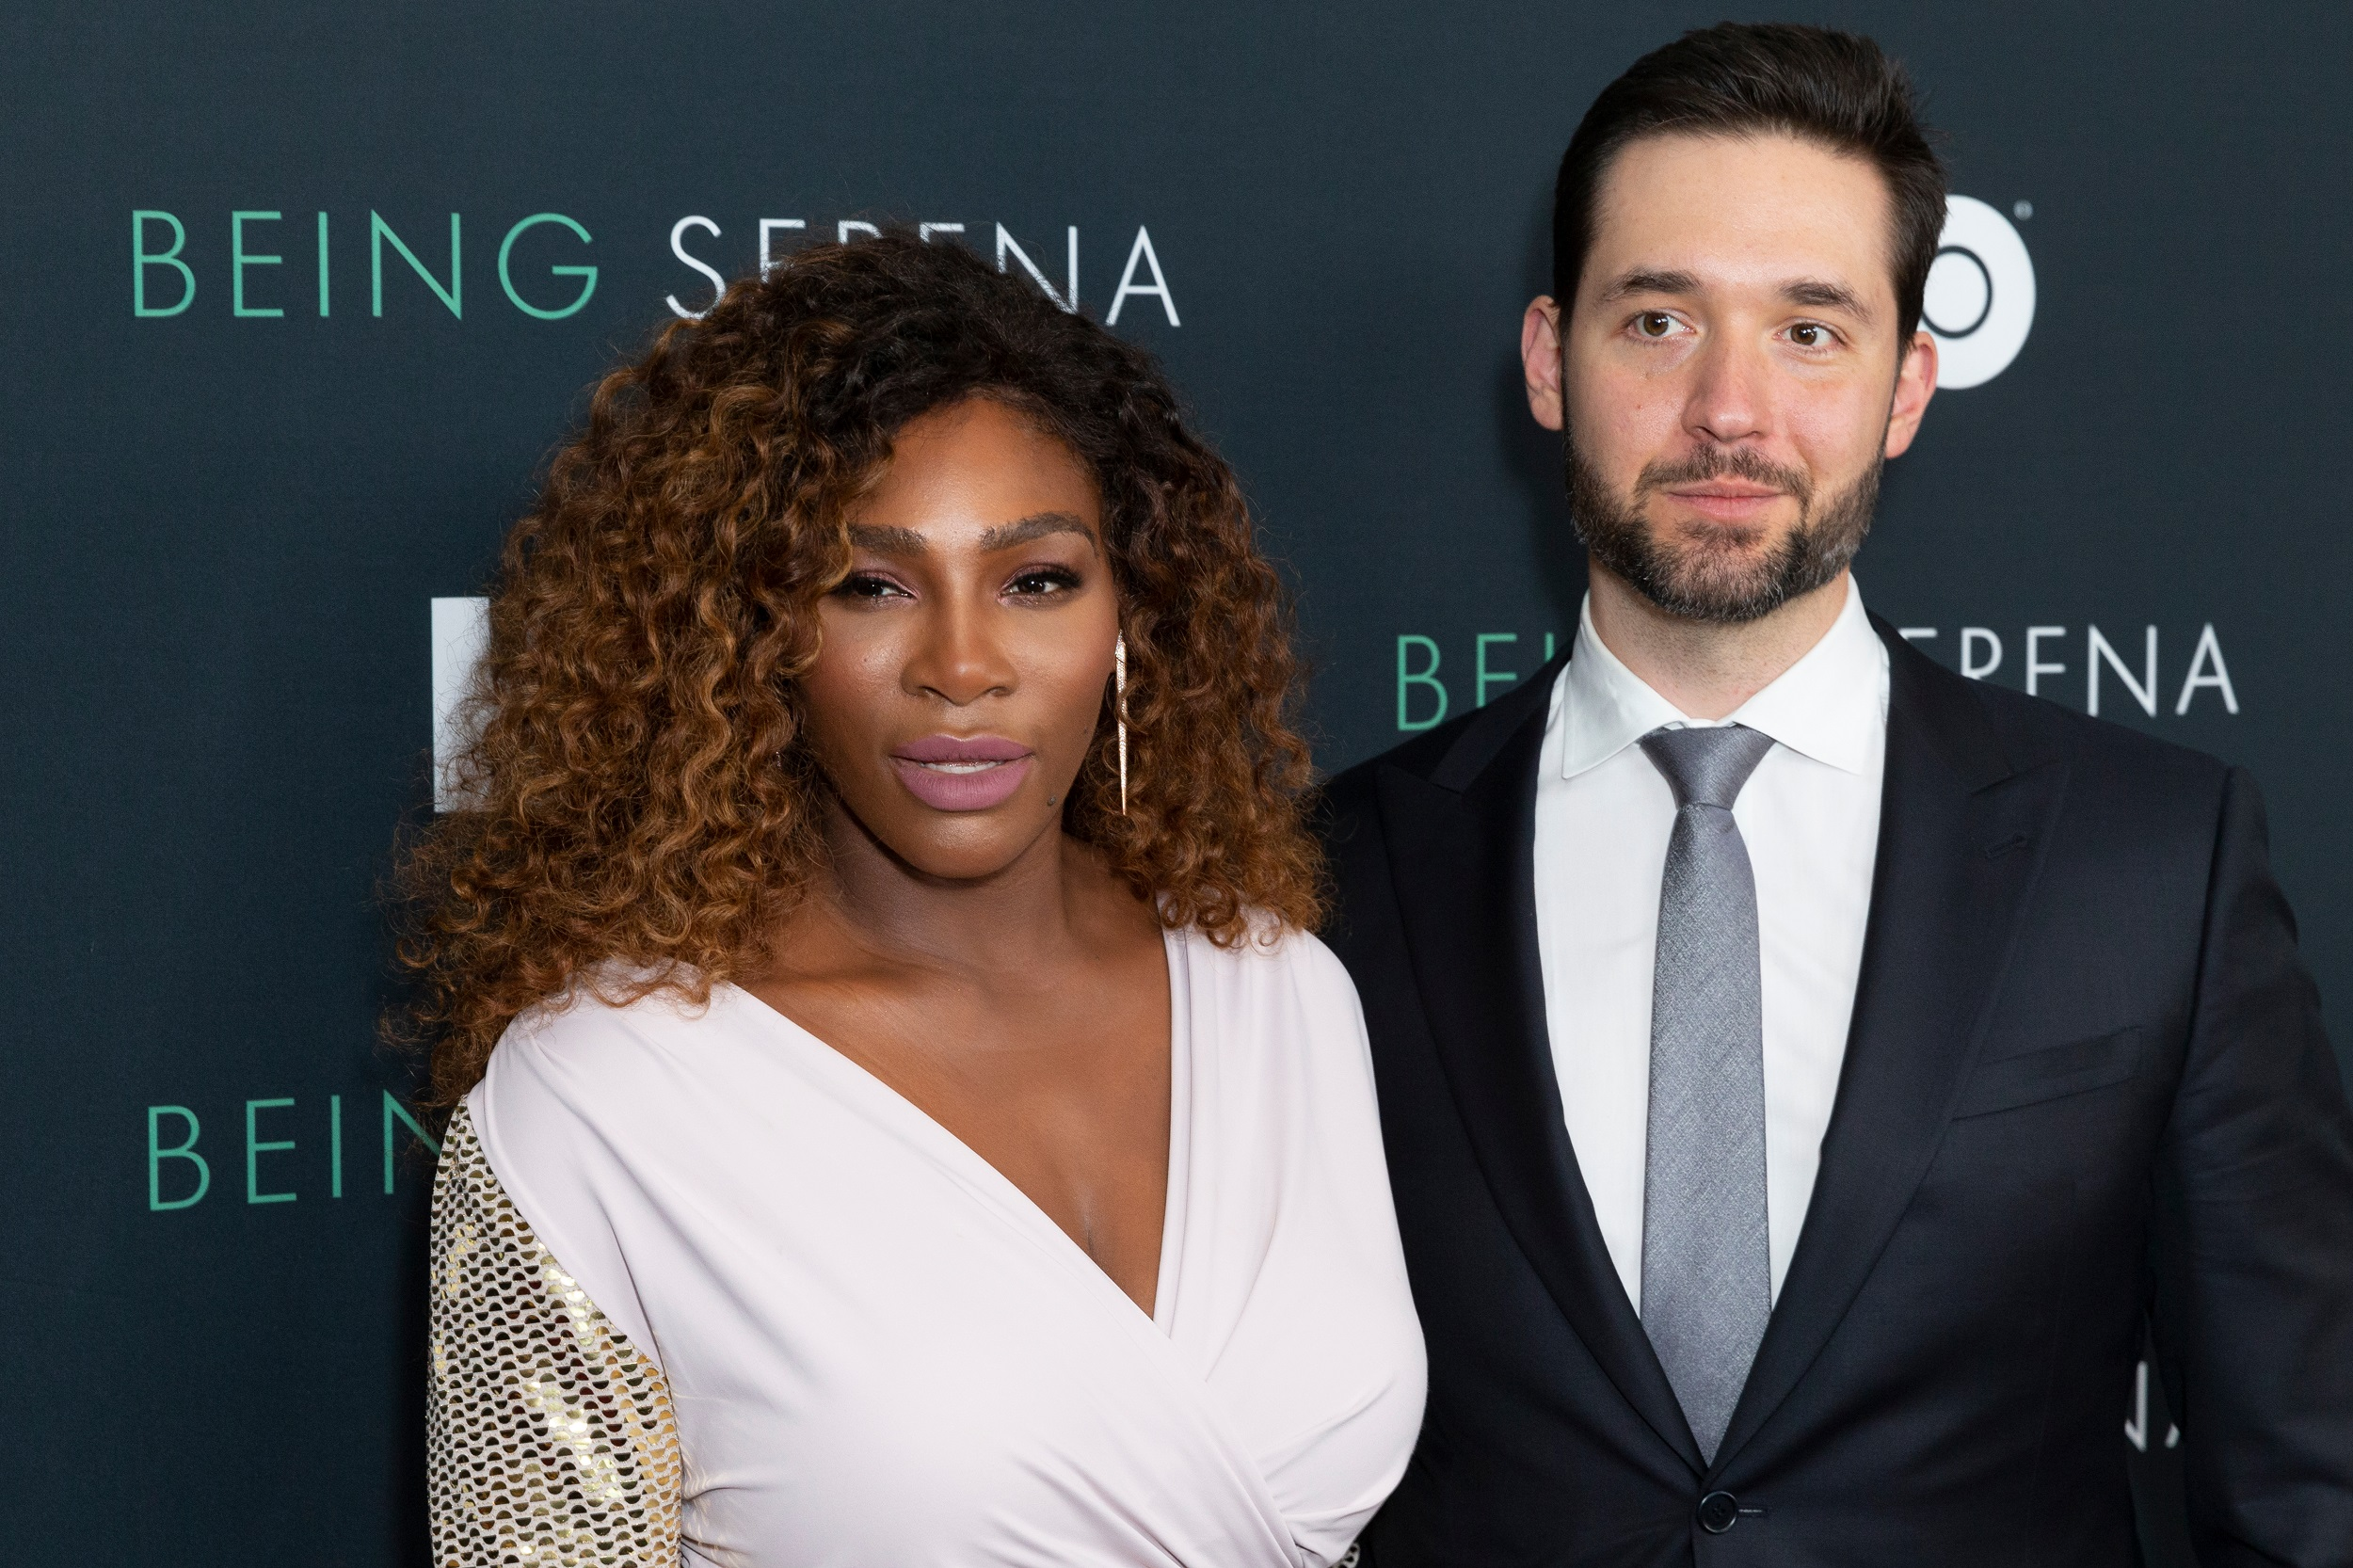 Serena Williams and Husband Alexis Ohanian